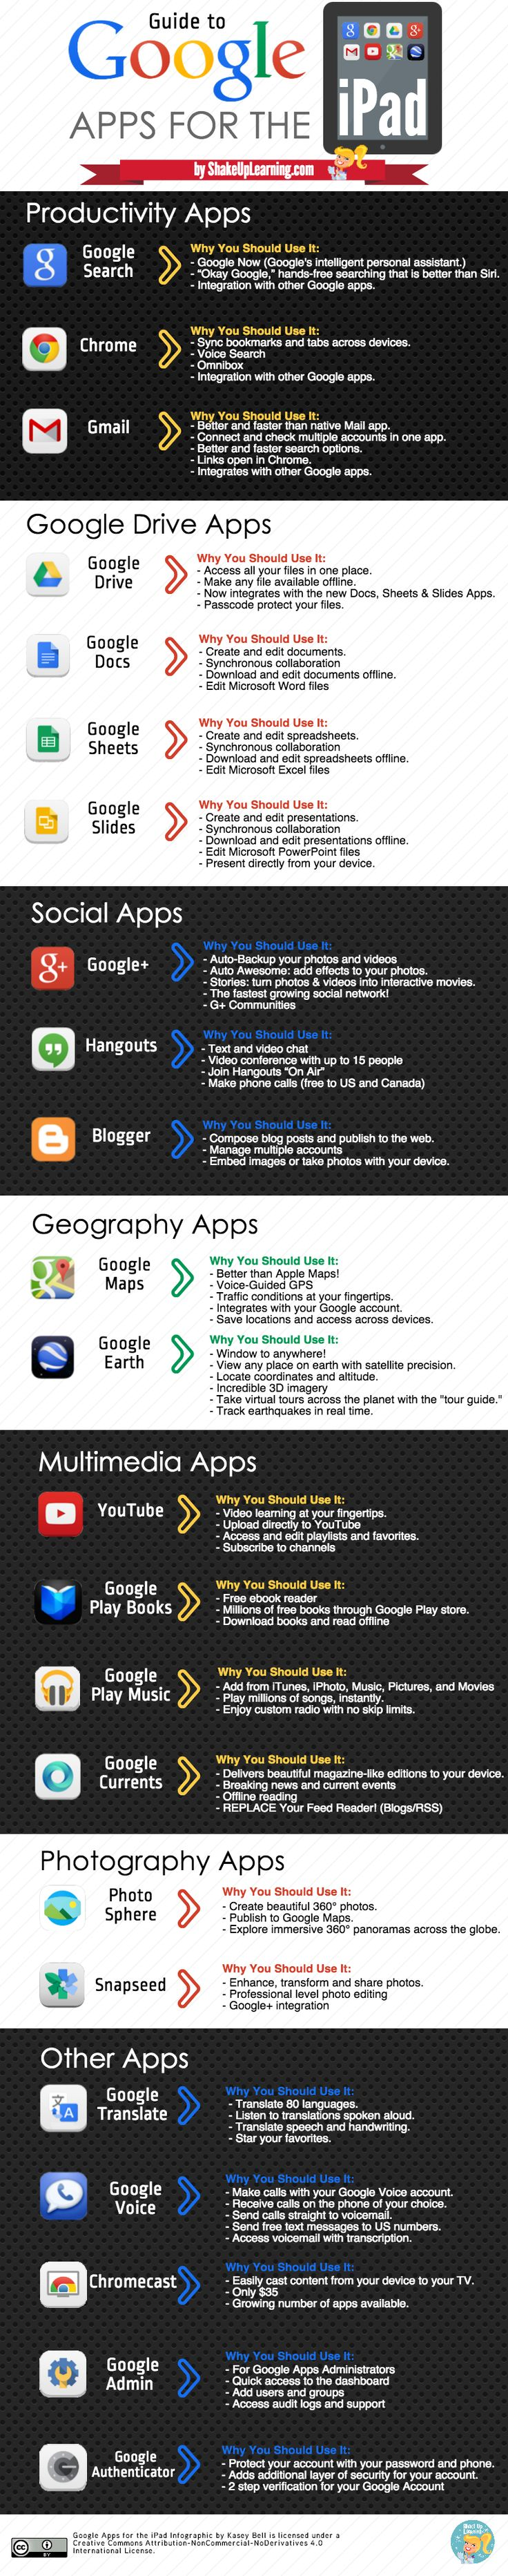 An Infographic Guide to Google Apps for the iPad | Shake Up Learning | www.shakeuplearning.com | #gafe #google #googleapps #ipad #ios #edtech